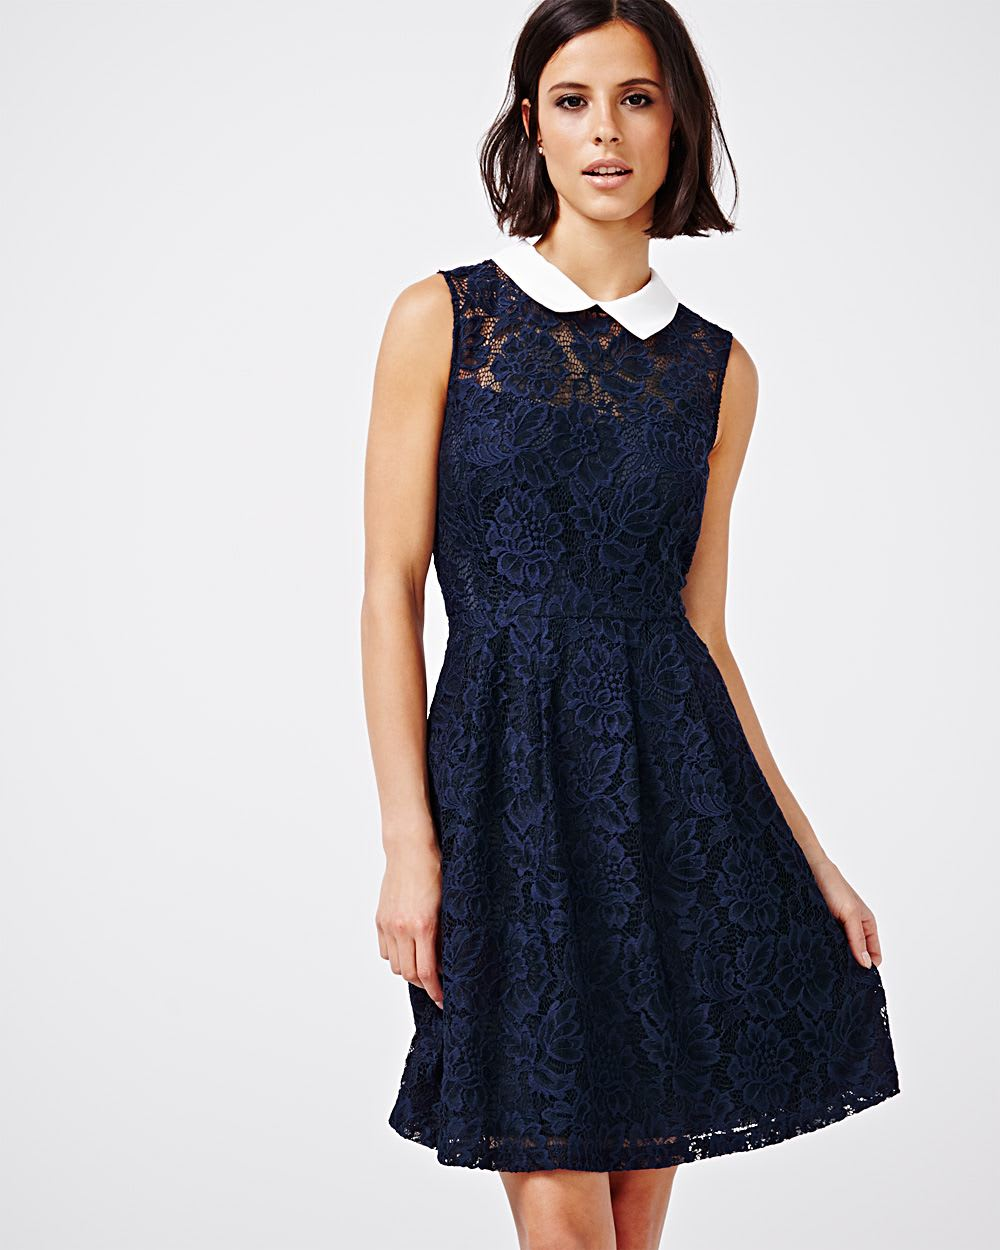 Lace Dress With Collar Rw Co